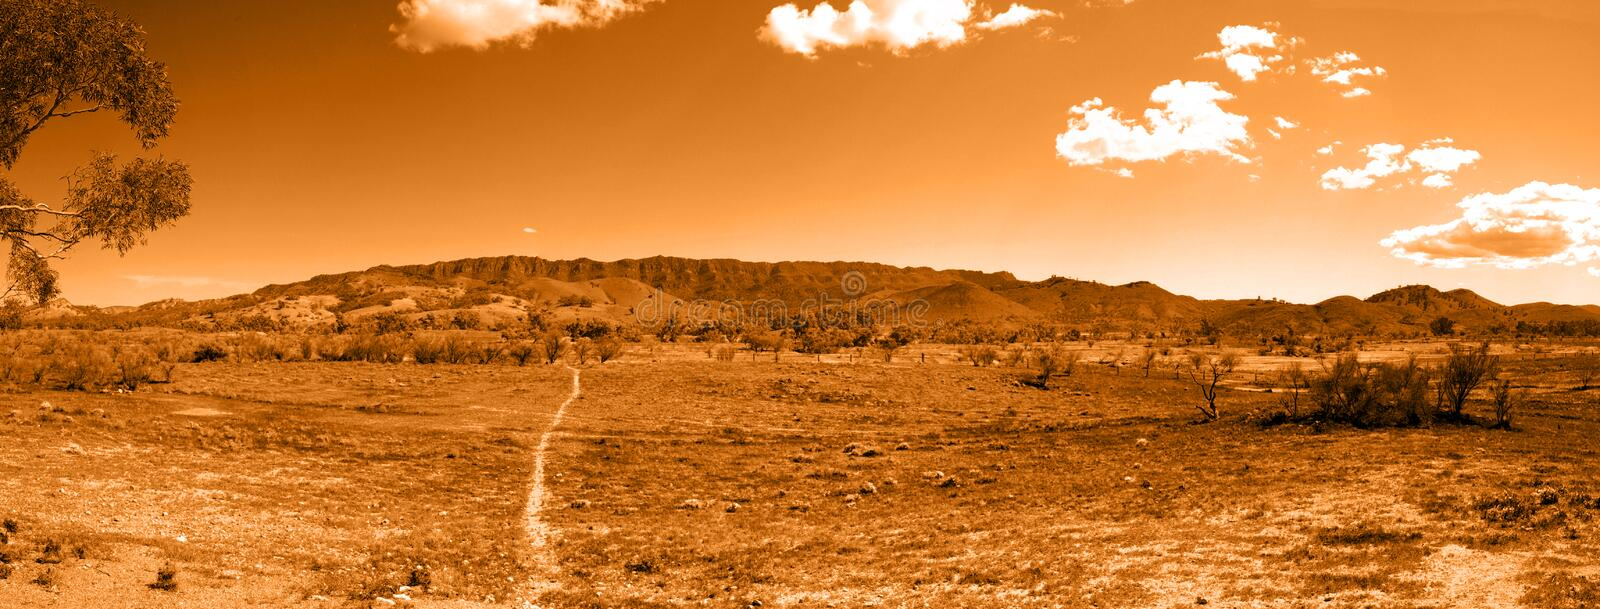 Download Walking Trail To Outback Hills Stock Photo - Image: 6378670